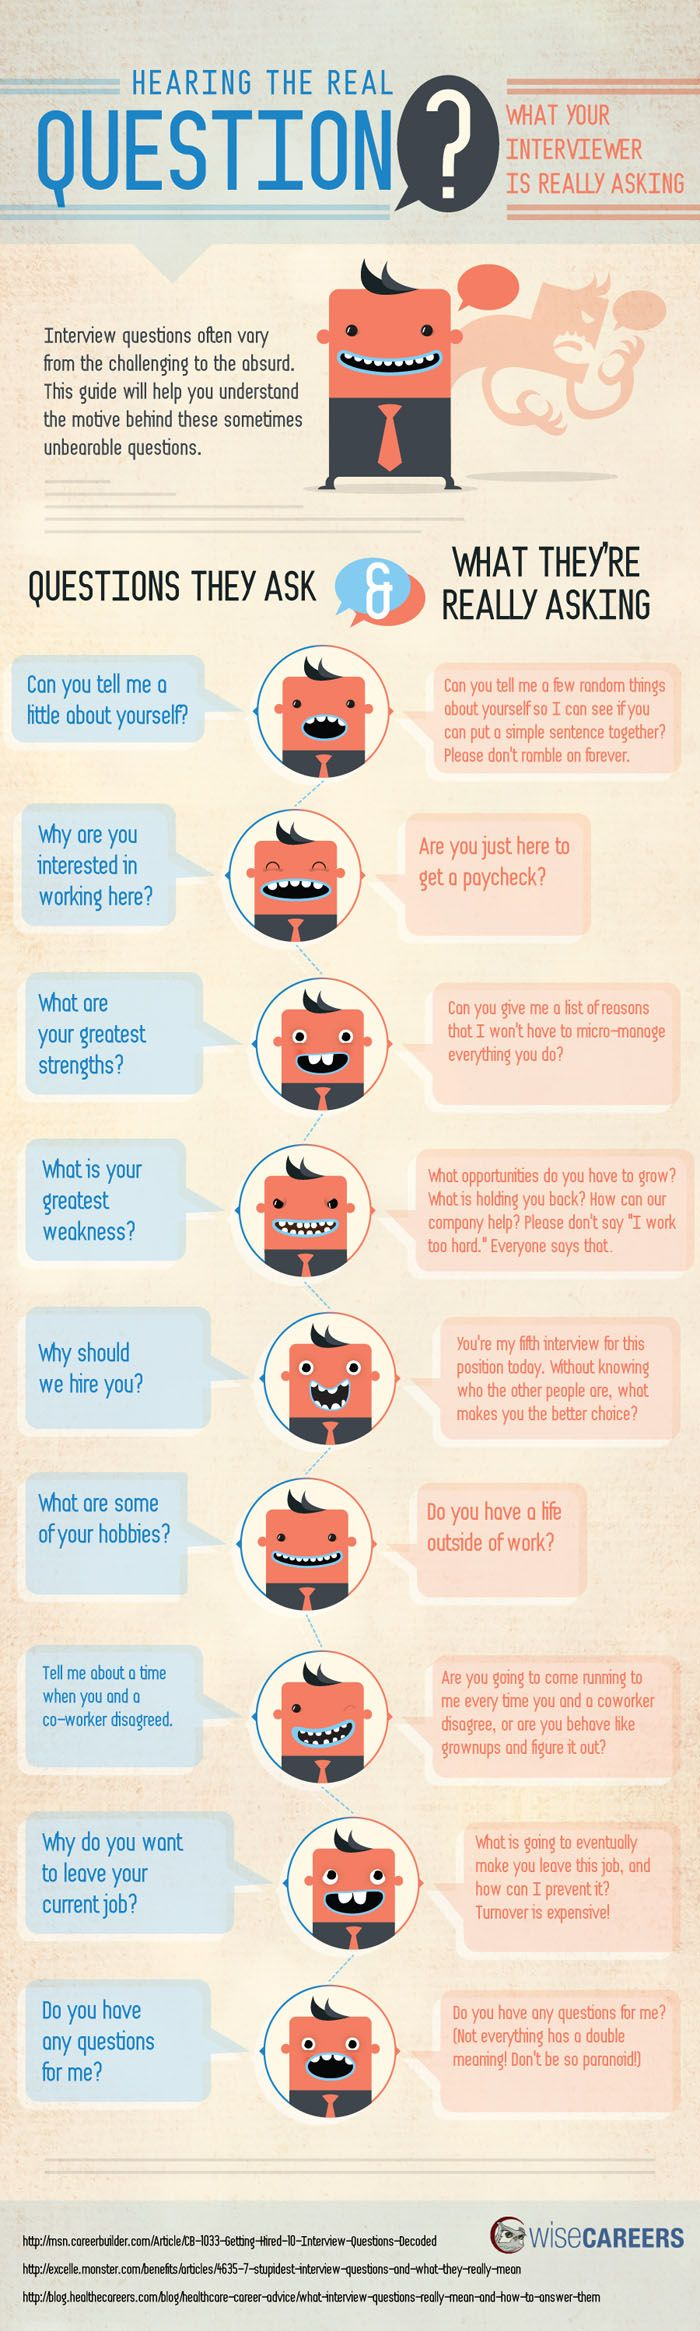 Hearing the Real Question in Your Interview - Infographic